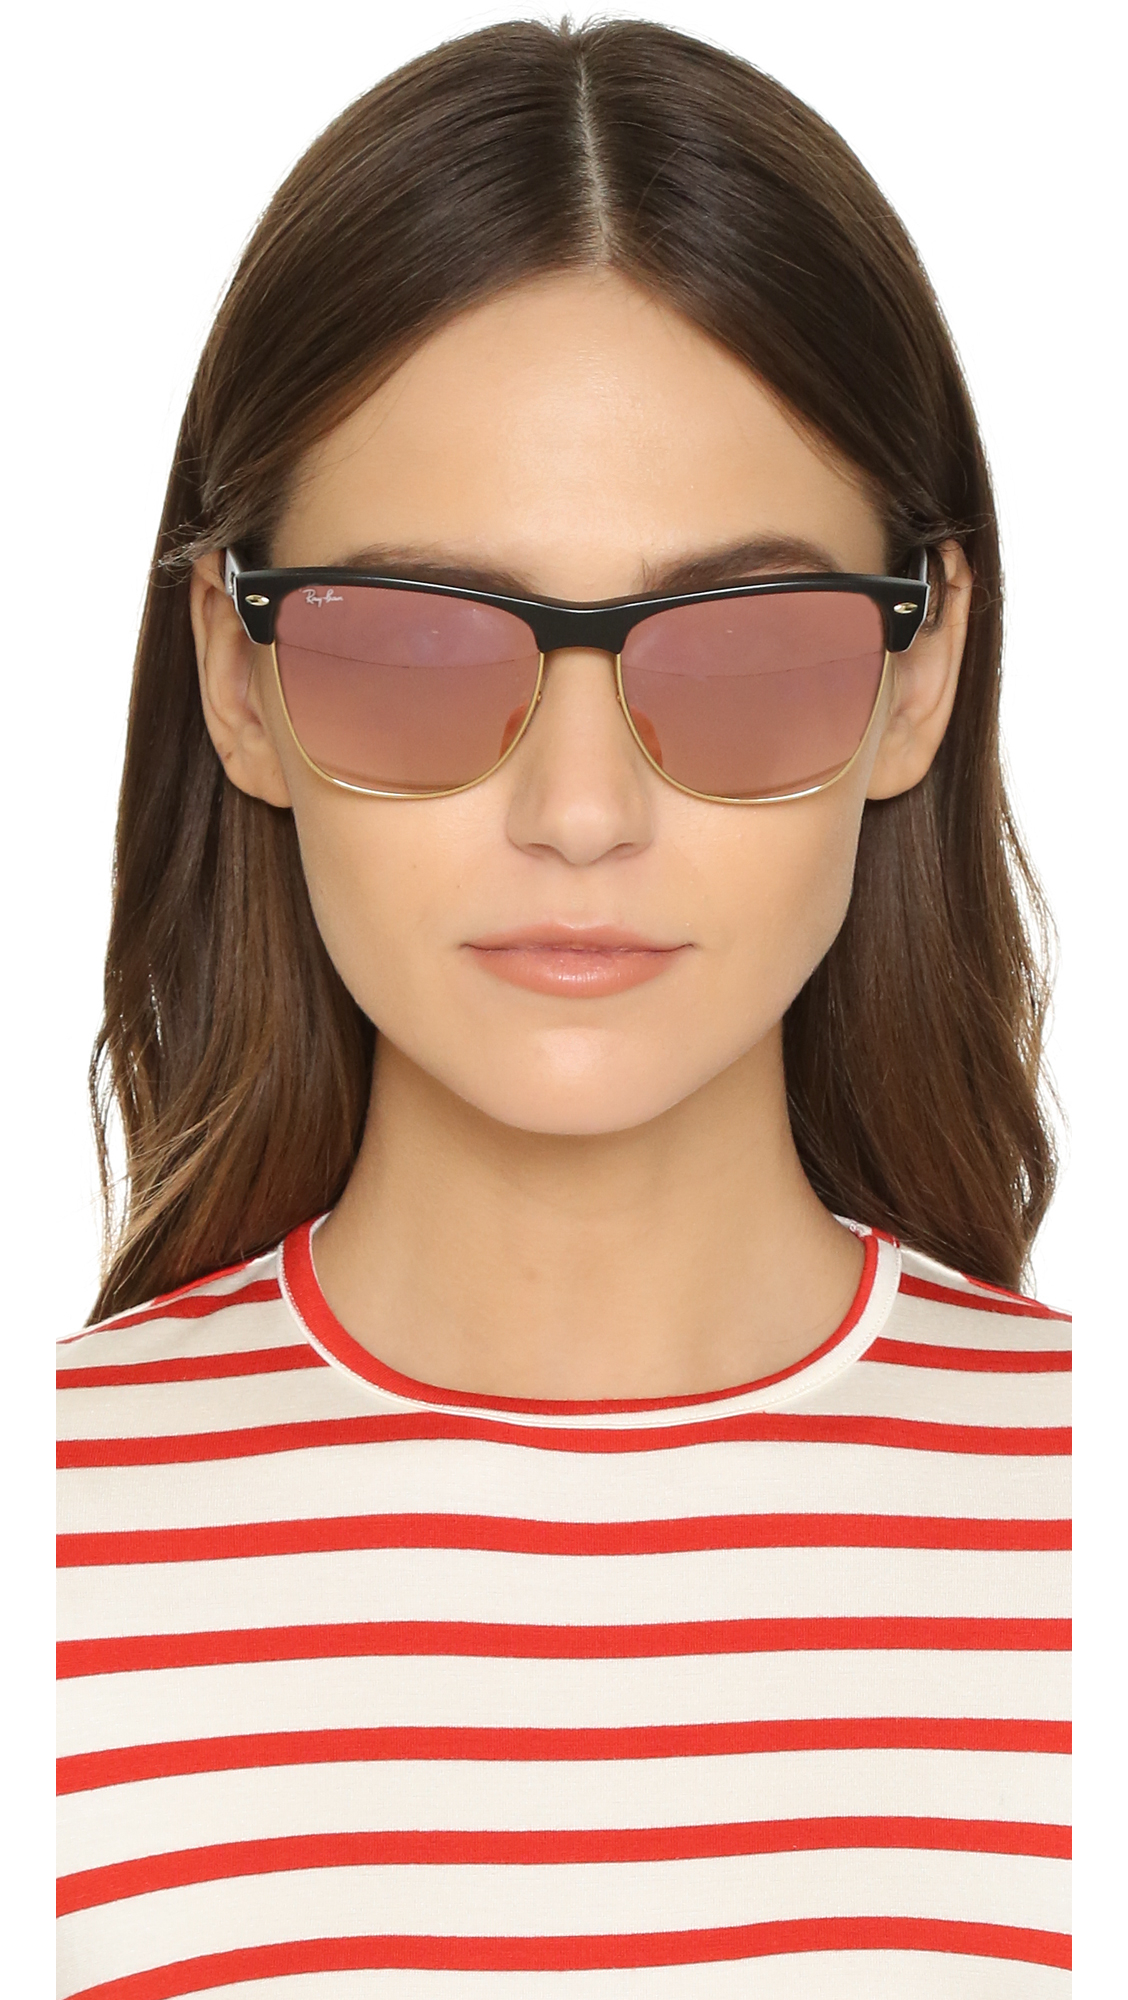 4089aa8482f5 ... best lyst ray ban oversized mirrored clubmaster sunglasses in black  5e699 09546